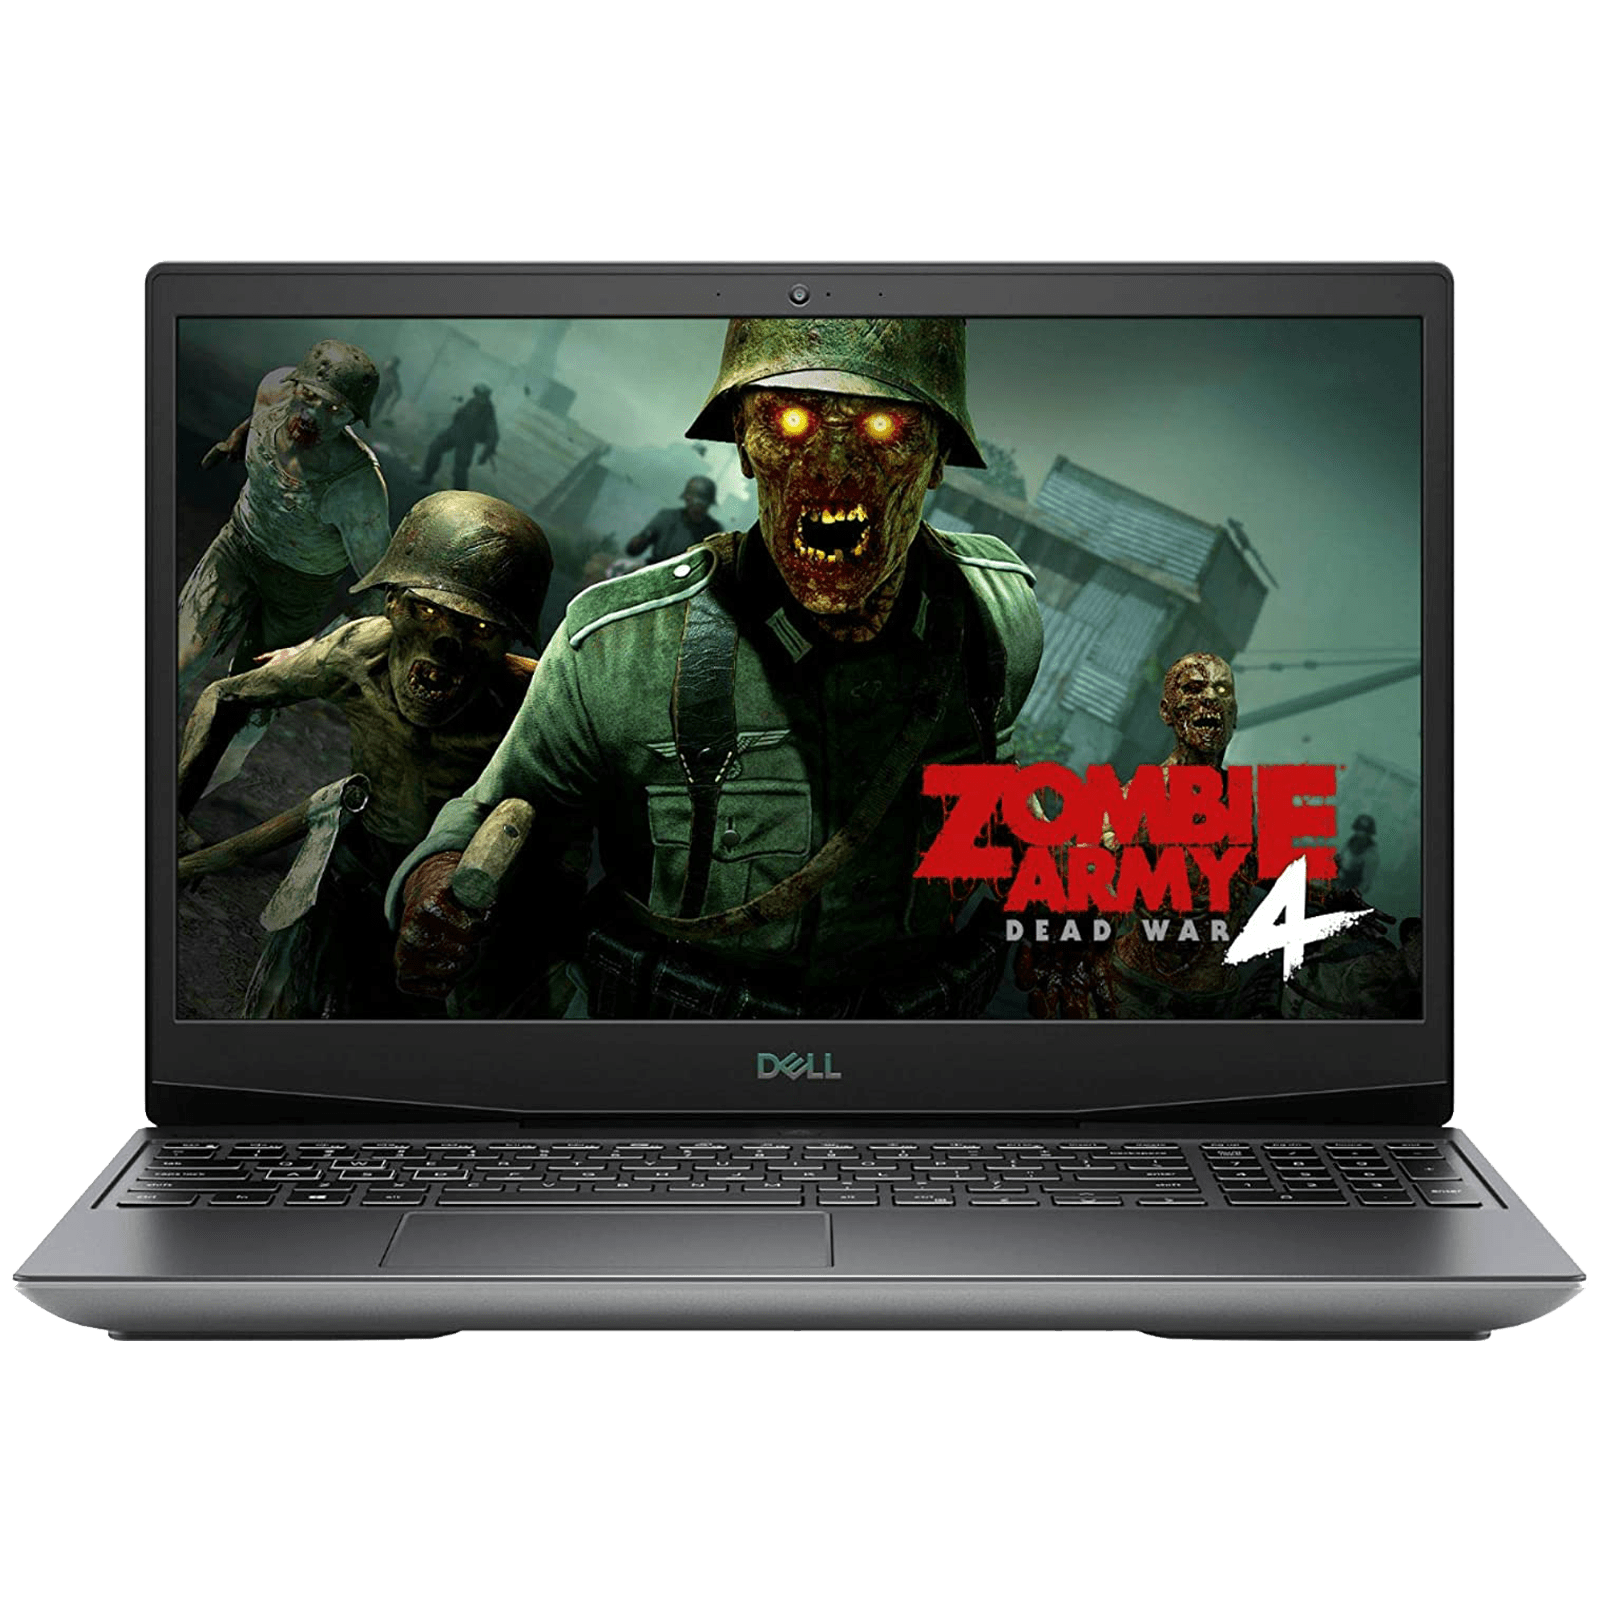 Dell Inspiron G5 SE 5505 (D560243HIN9S) Ryzen 5 Windows 10 Home Gaming Laptop (8GB RAM, 512GB SSD, AMD Radeon RX 5600M + 6GB Graphics, MS Office, 39.62cm, Silver)